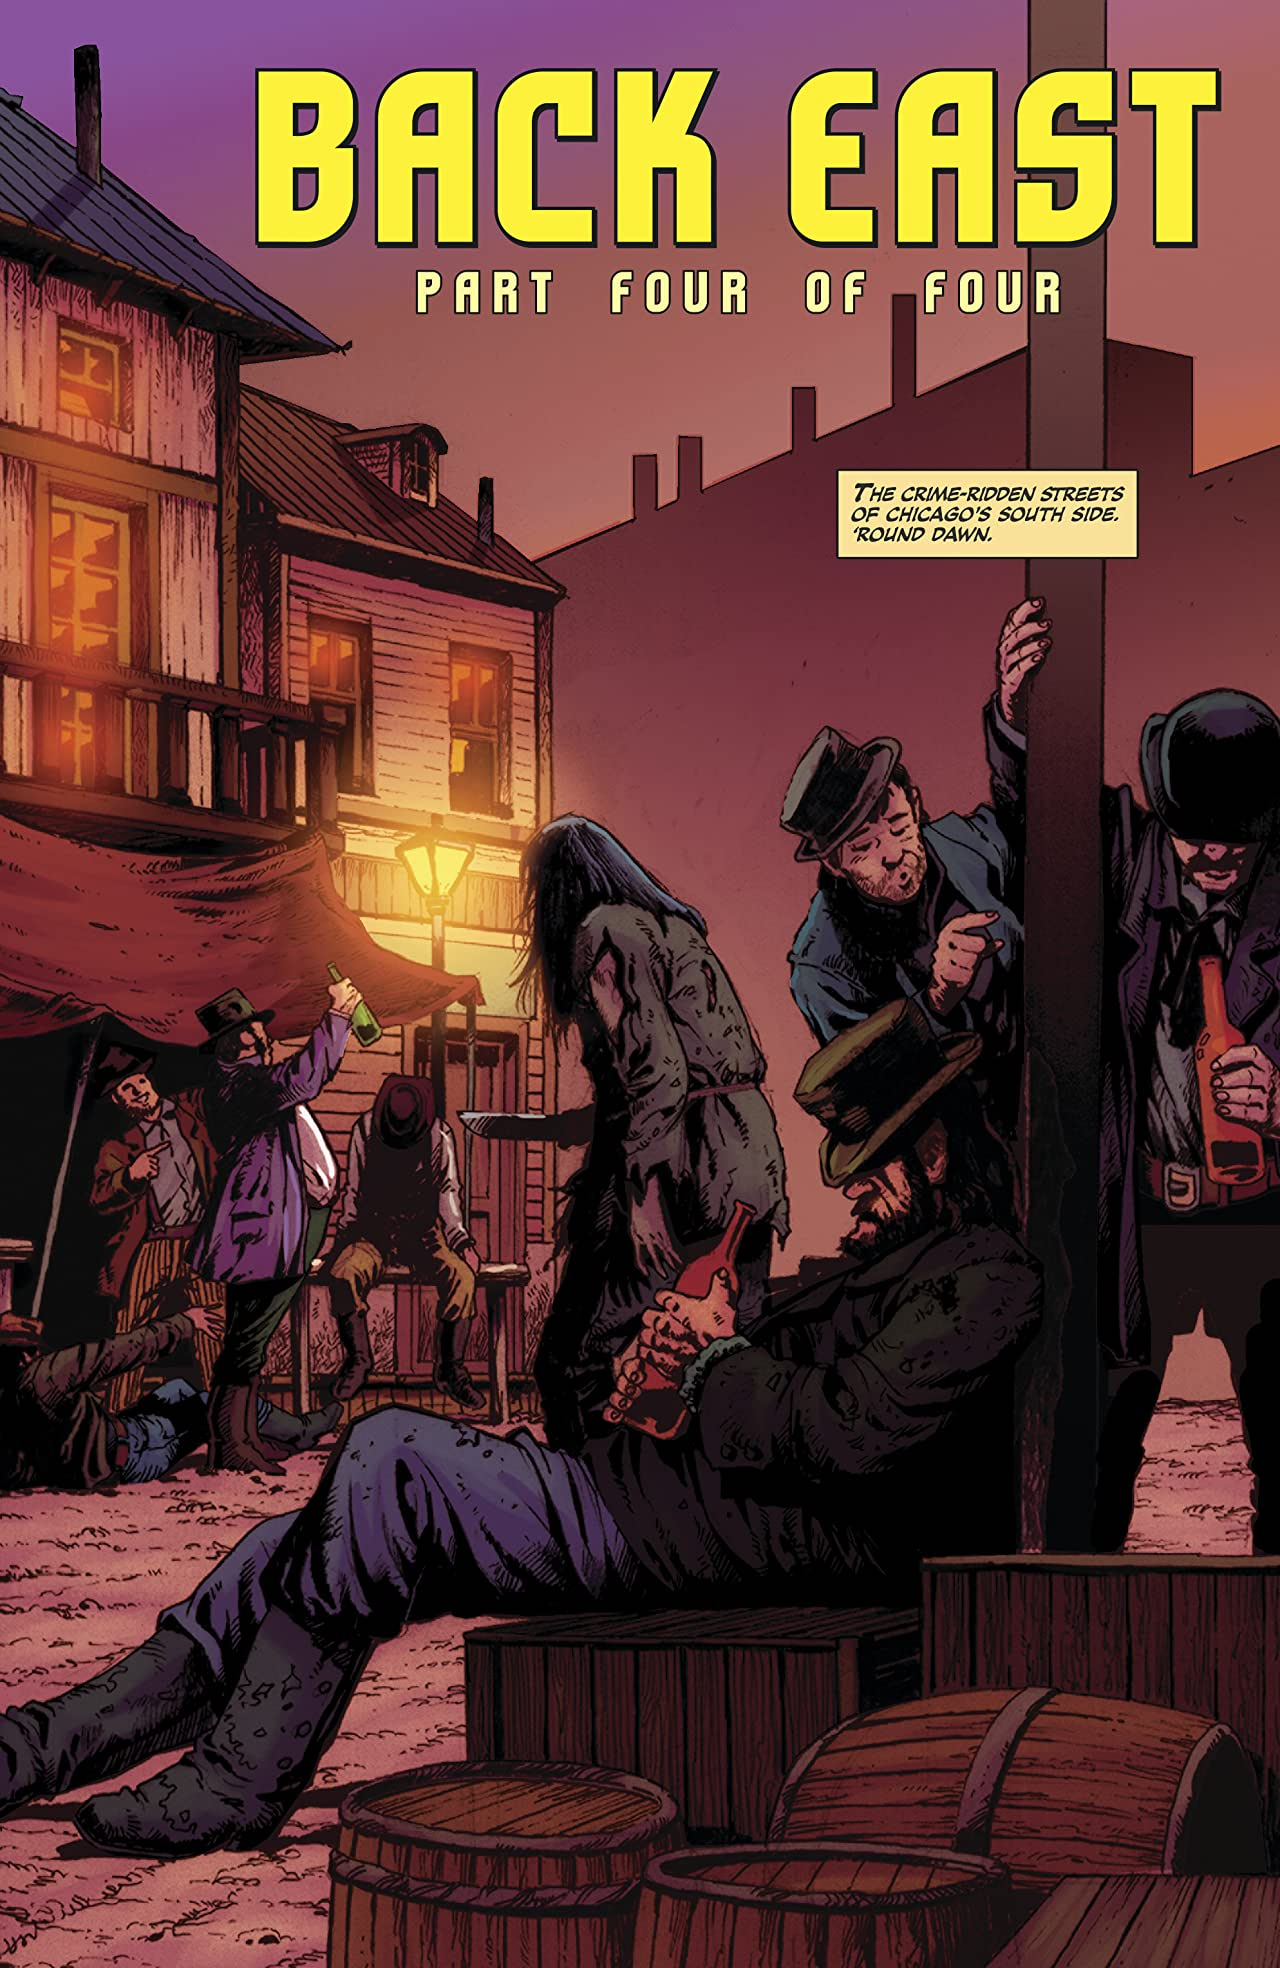 The Lone Ranger Vol. 2 #18